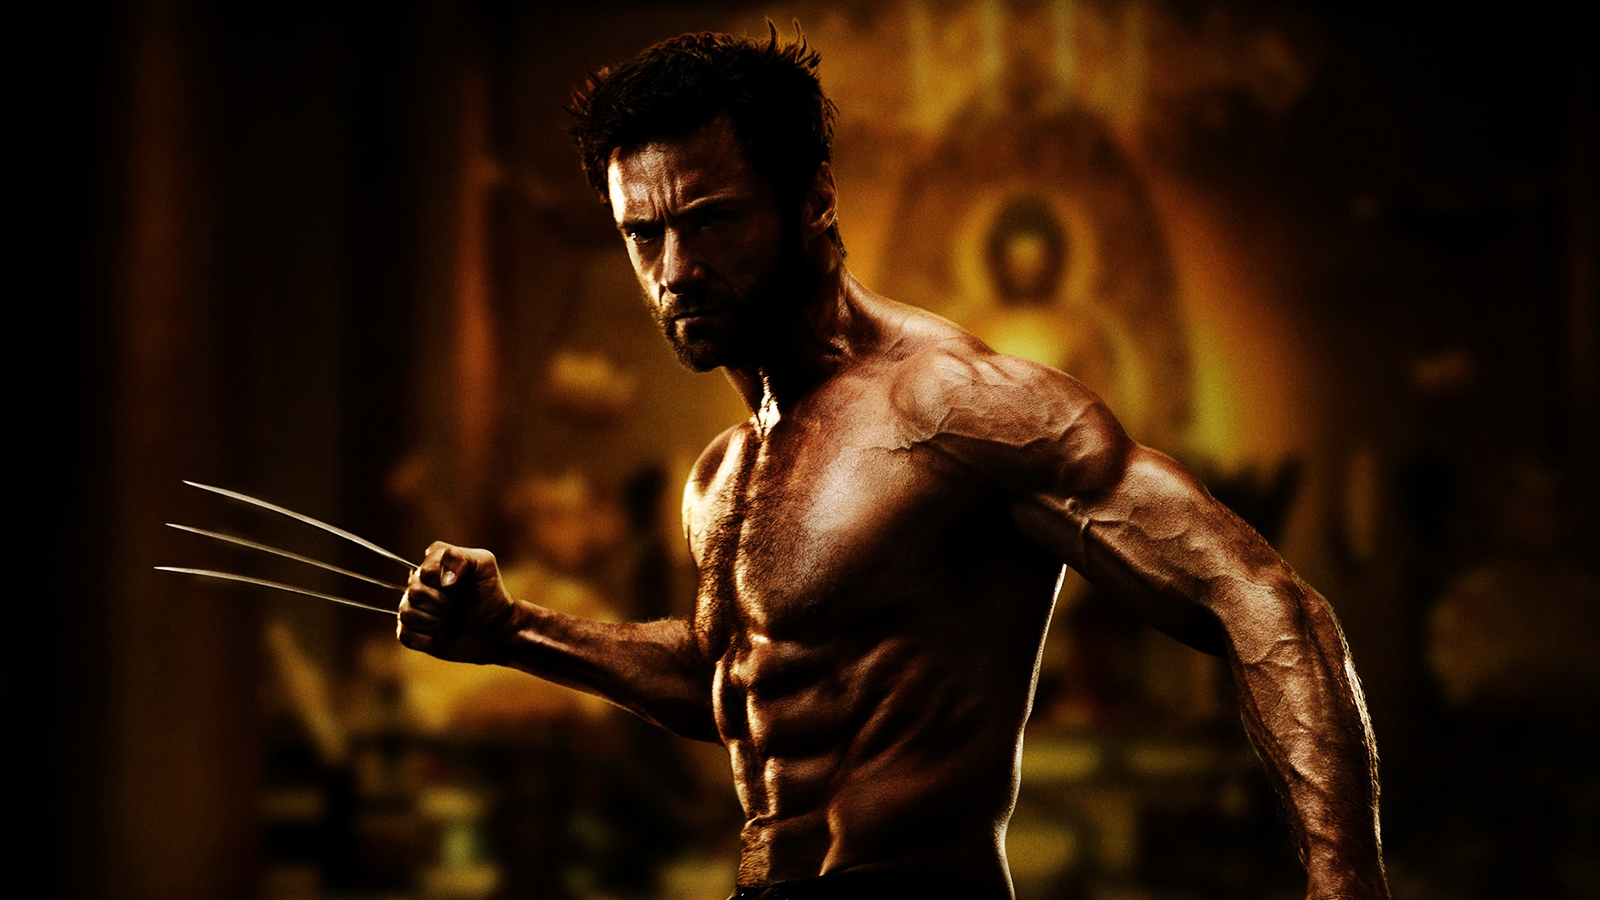 Movie HD Wallpapers Download Wallpapers in HD for your Desktop 1600x900